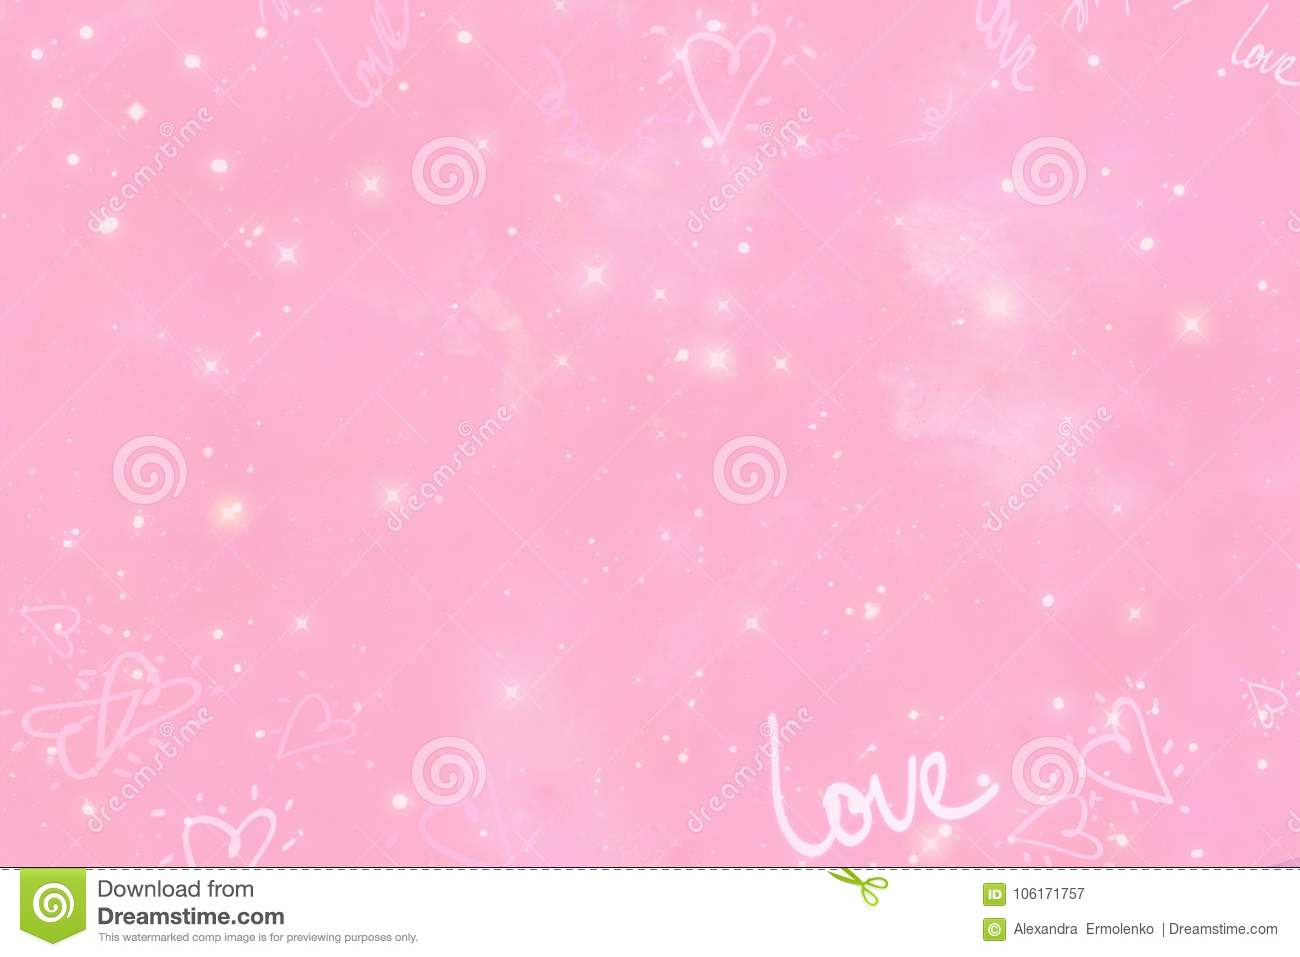 Abstract pink shimmering background